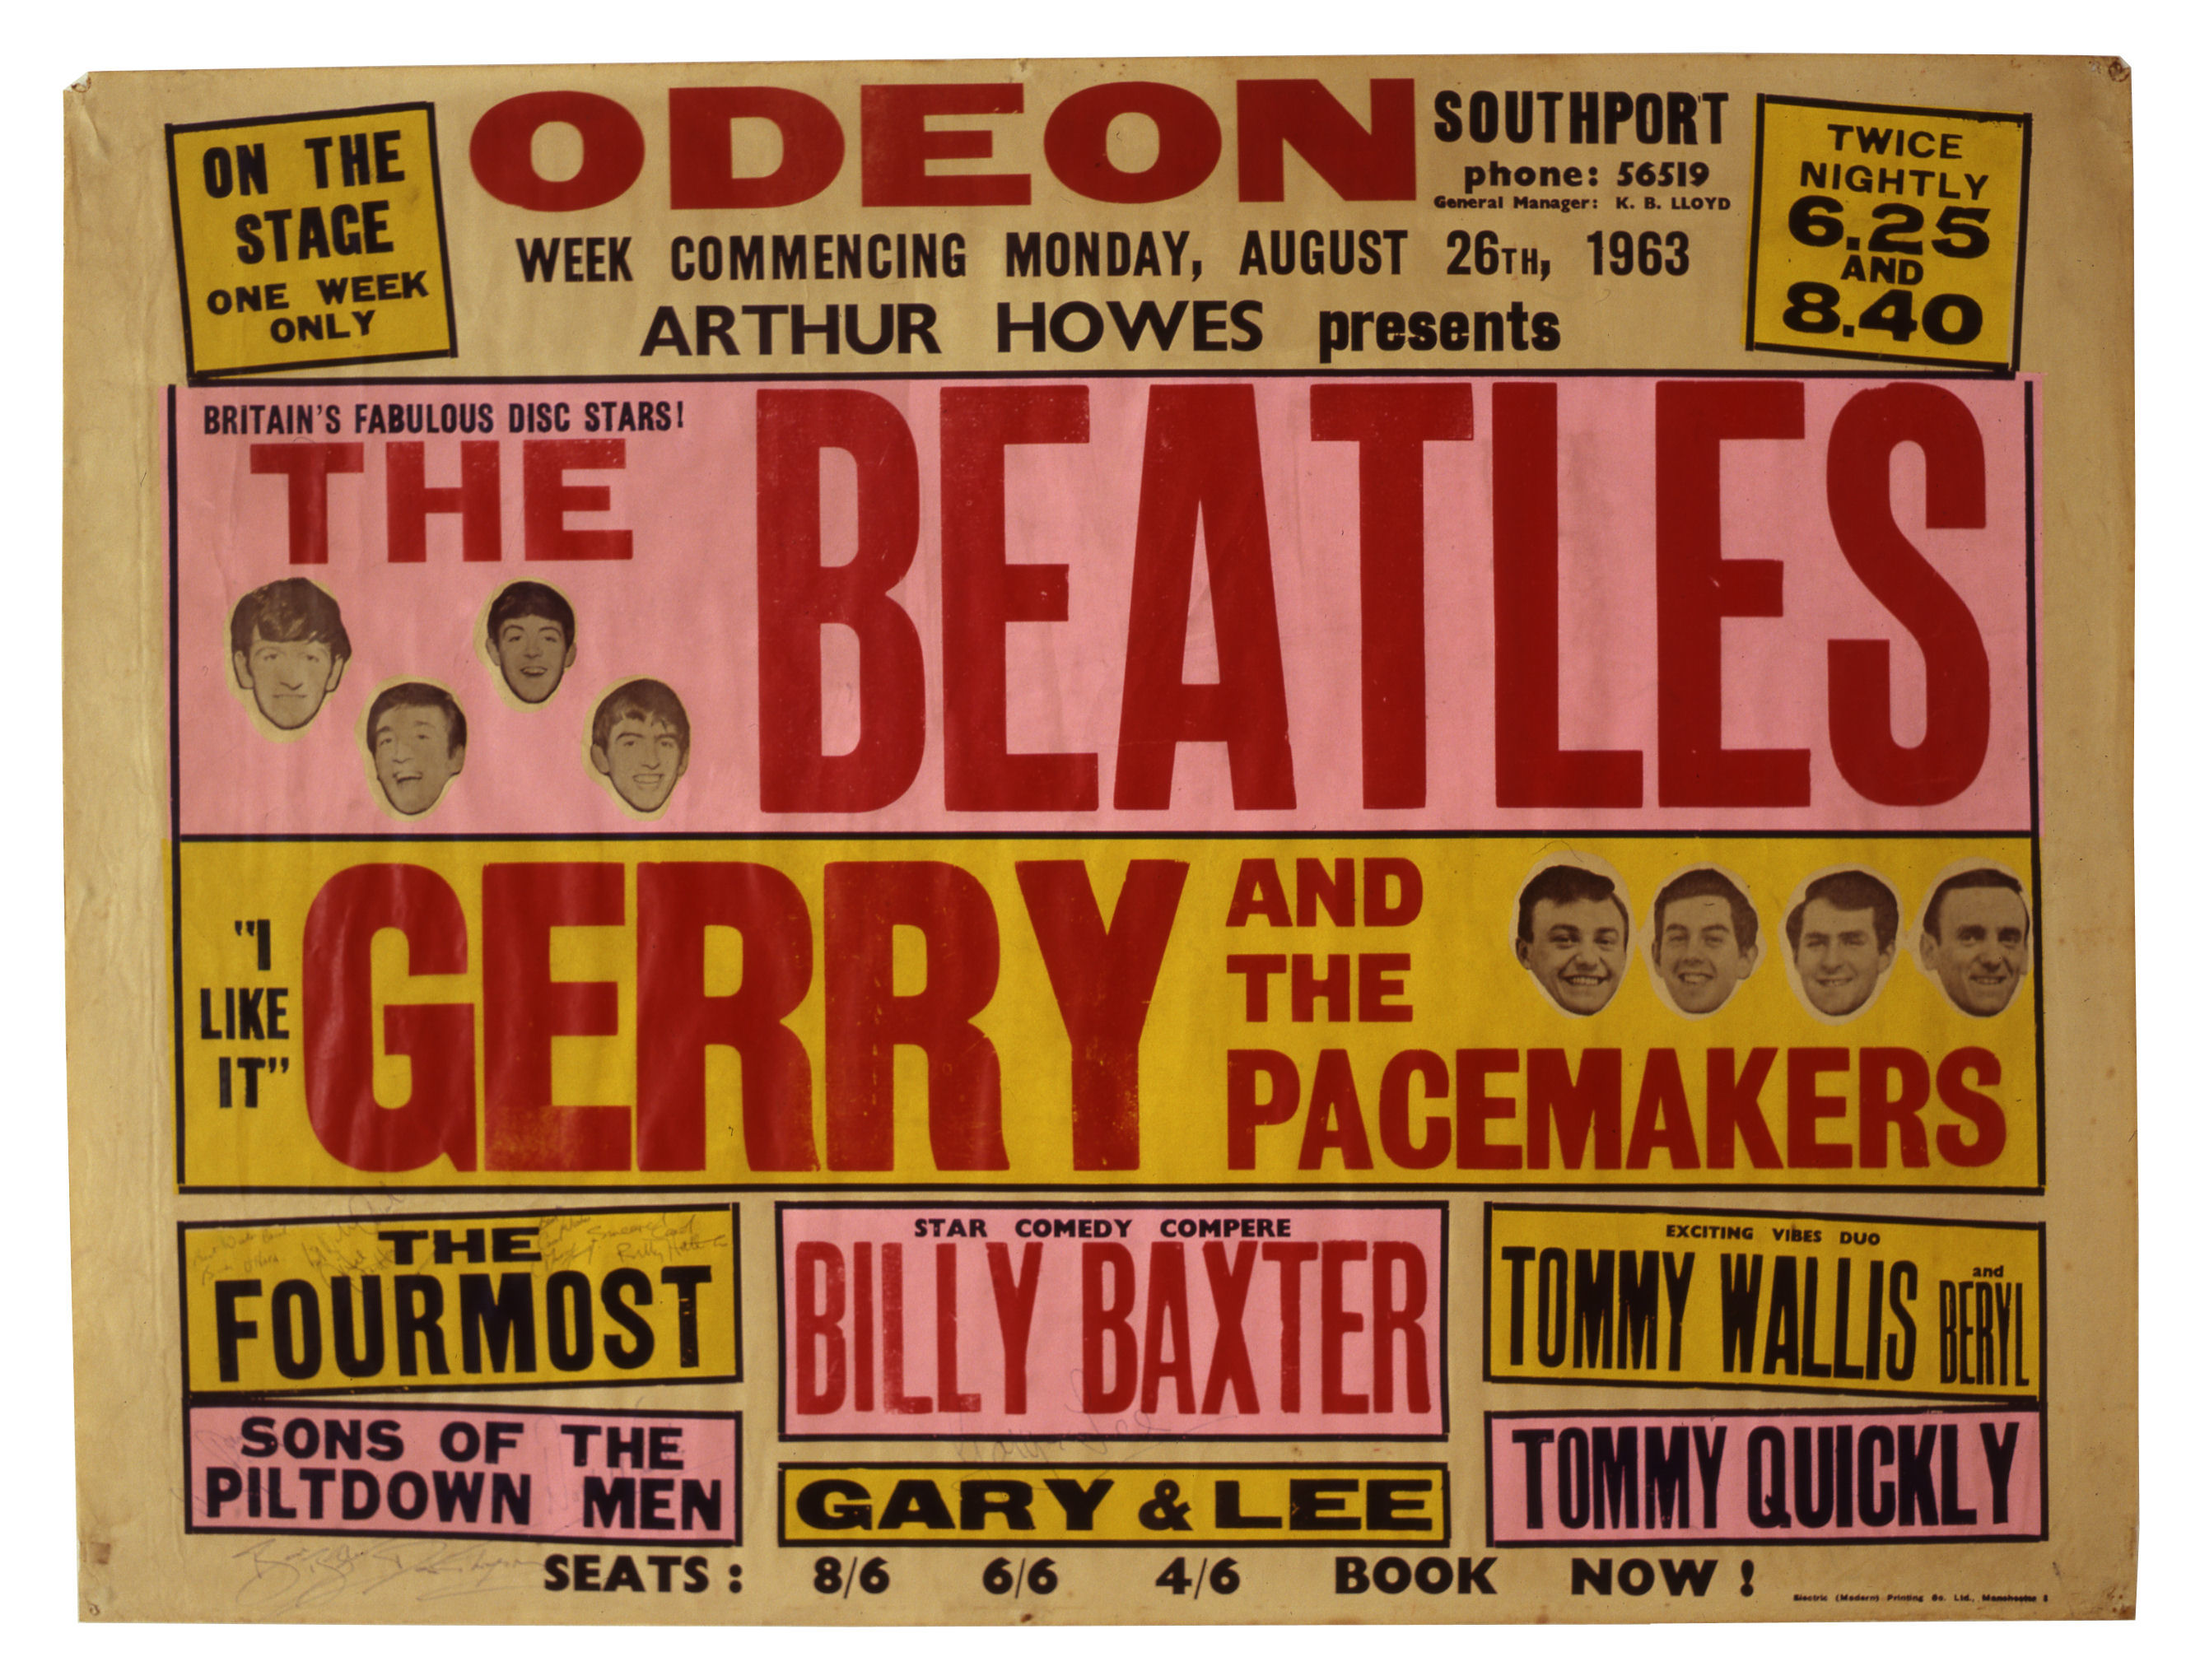 UK Based Beatles Dealers On The Search For Beatles Concert Posters In March  2015